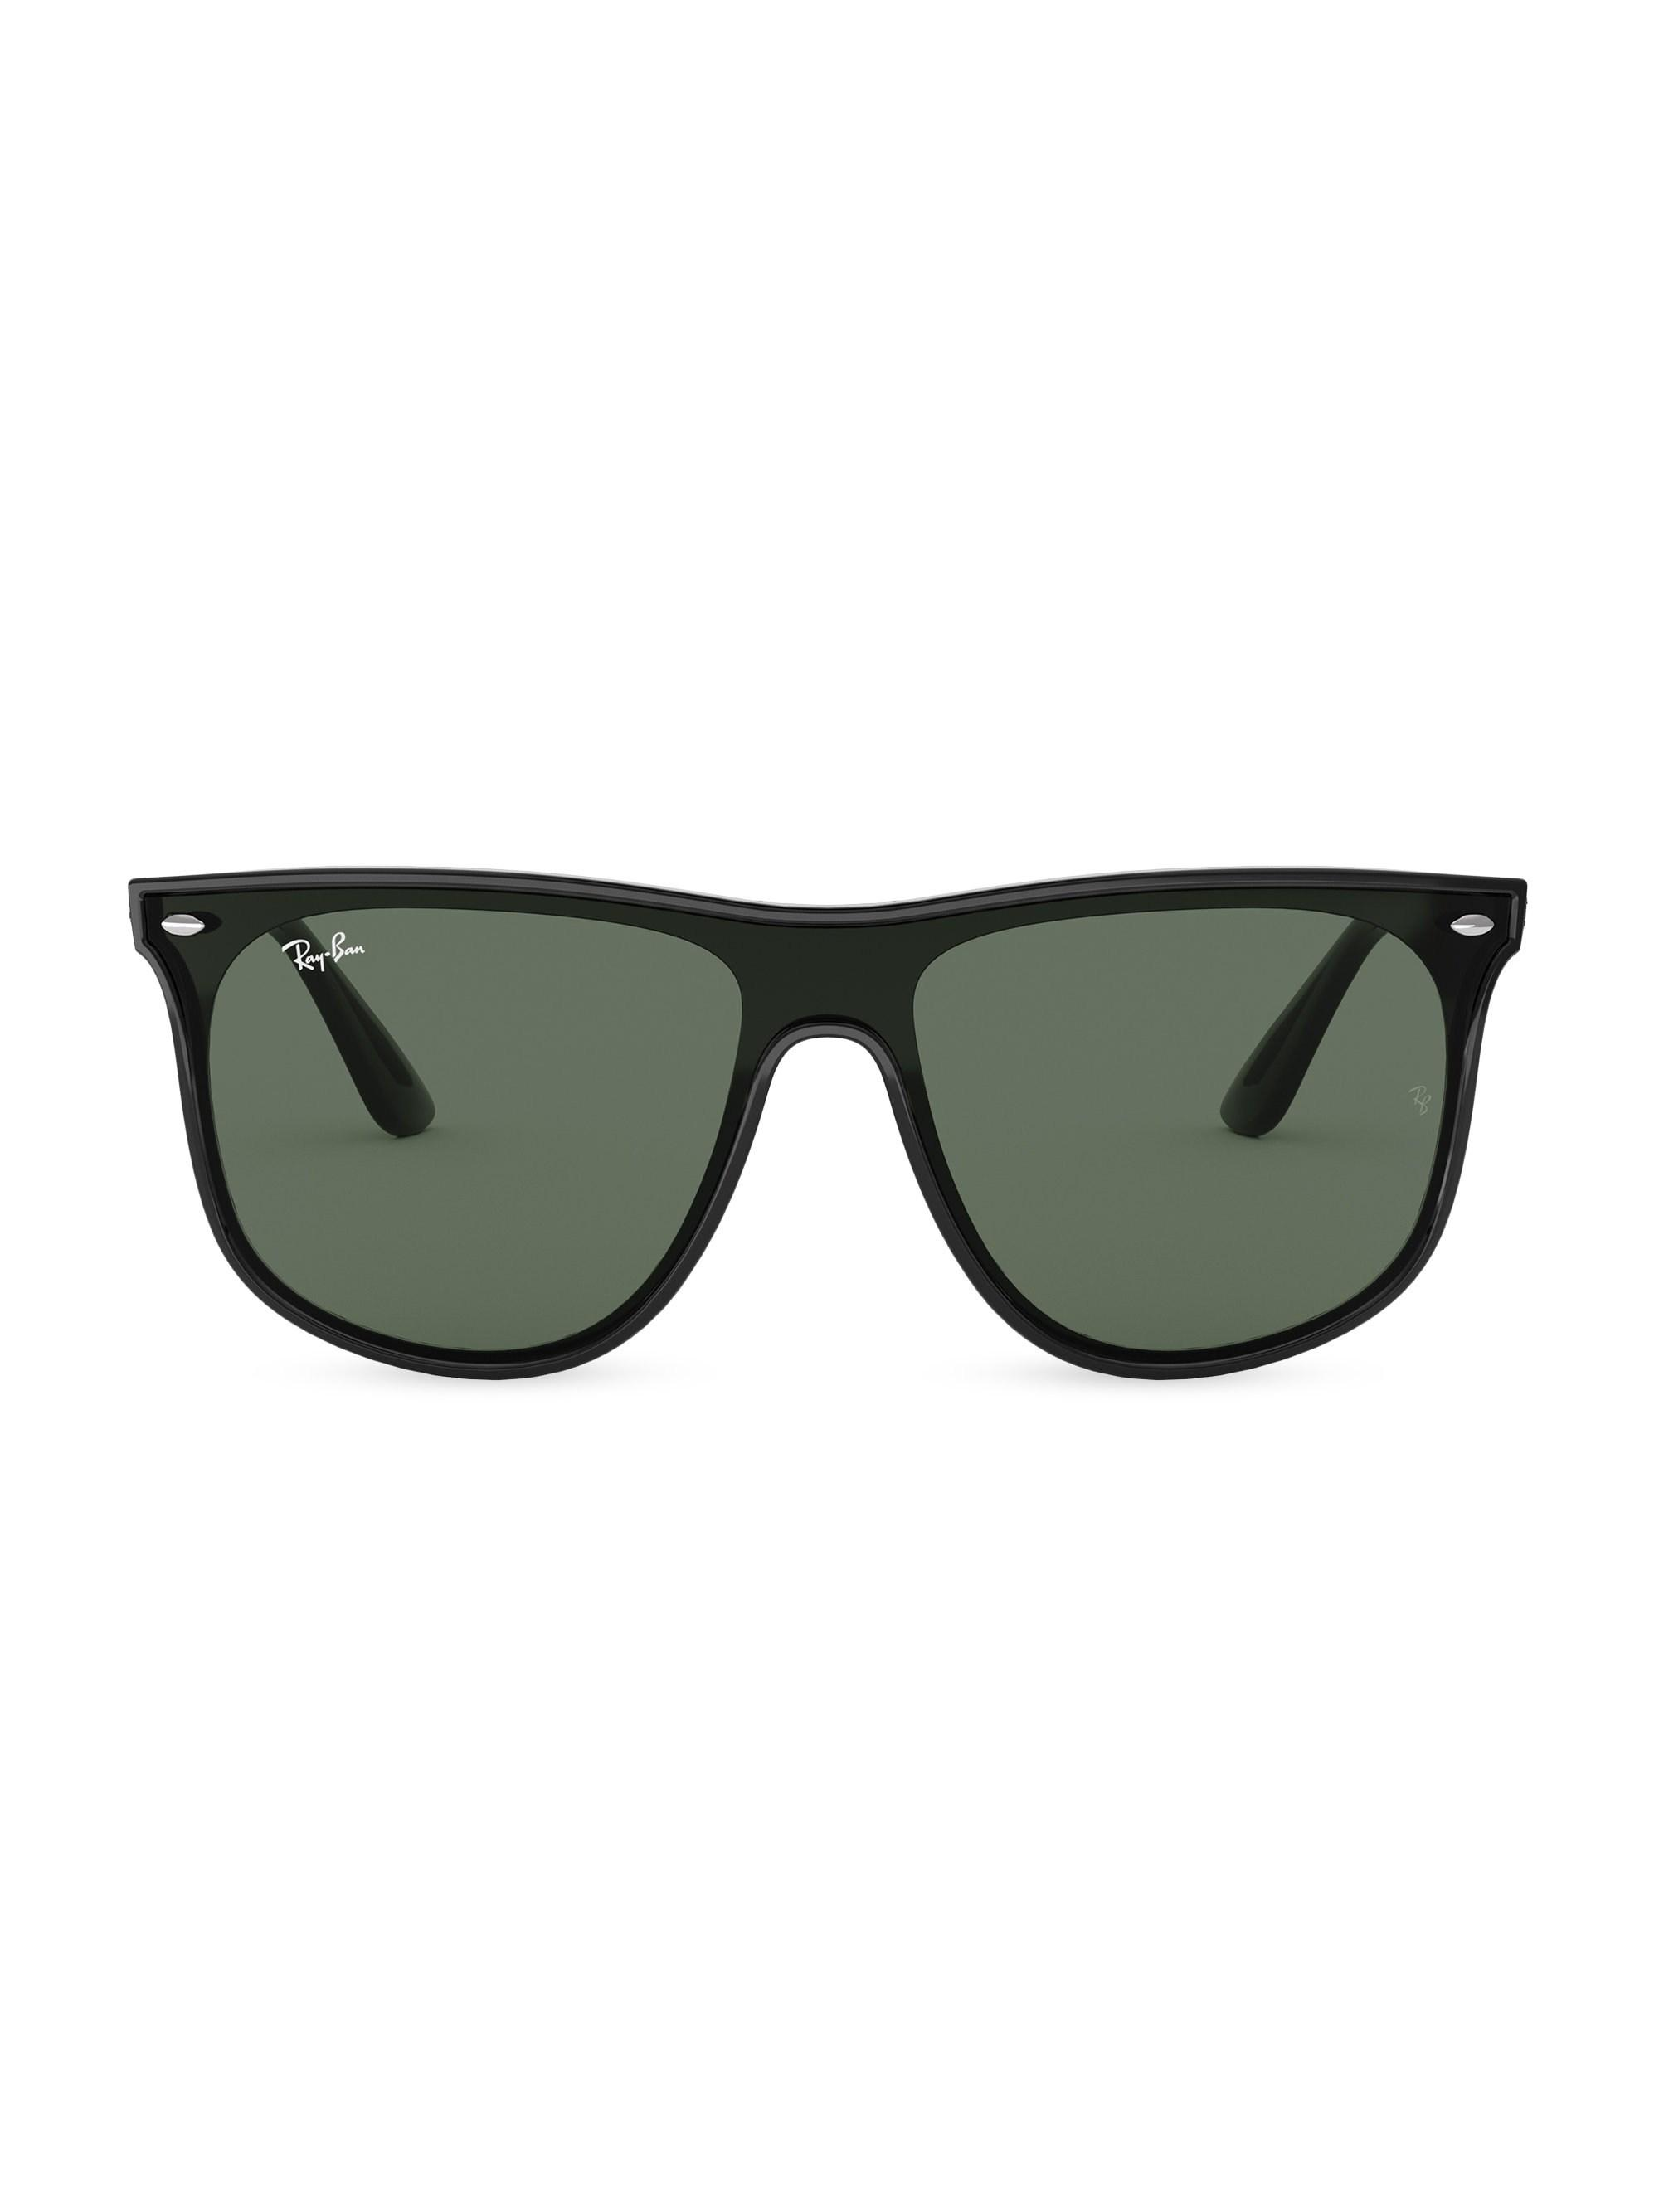 abbeb3762de2b Ray-Ban Men s 40mm Wayfarer Sunglasses - Black in Black for Men - Lyst